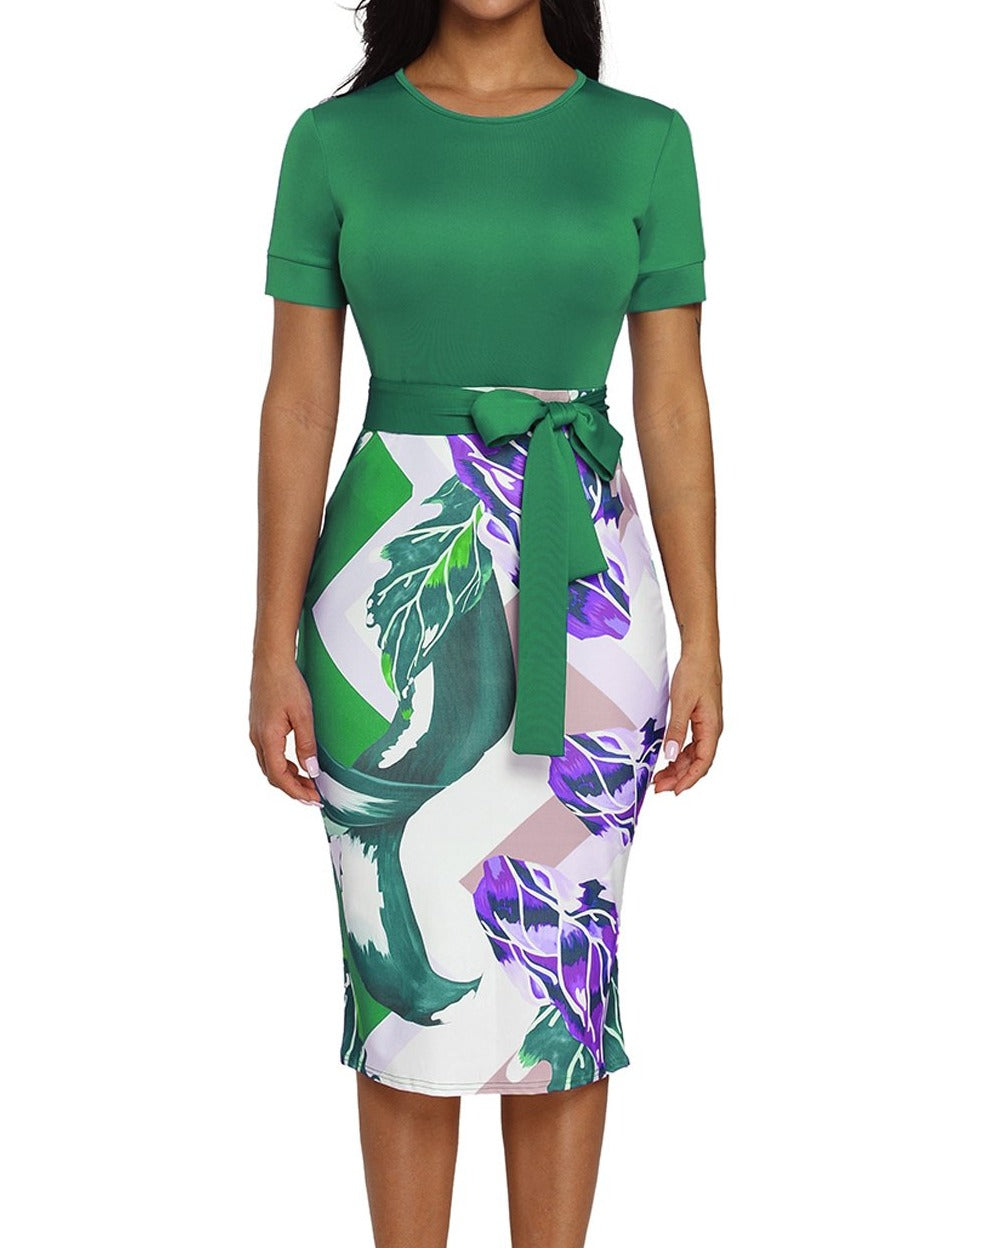 Green Bowknot Short Sleeve Printed Sheath Dress